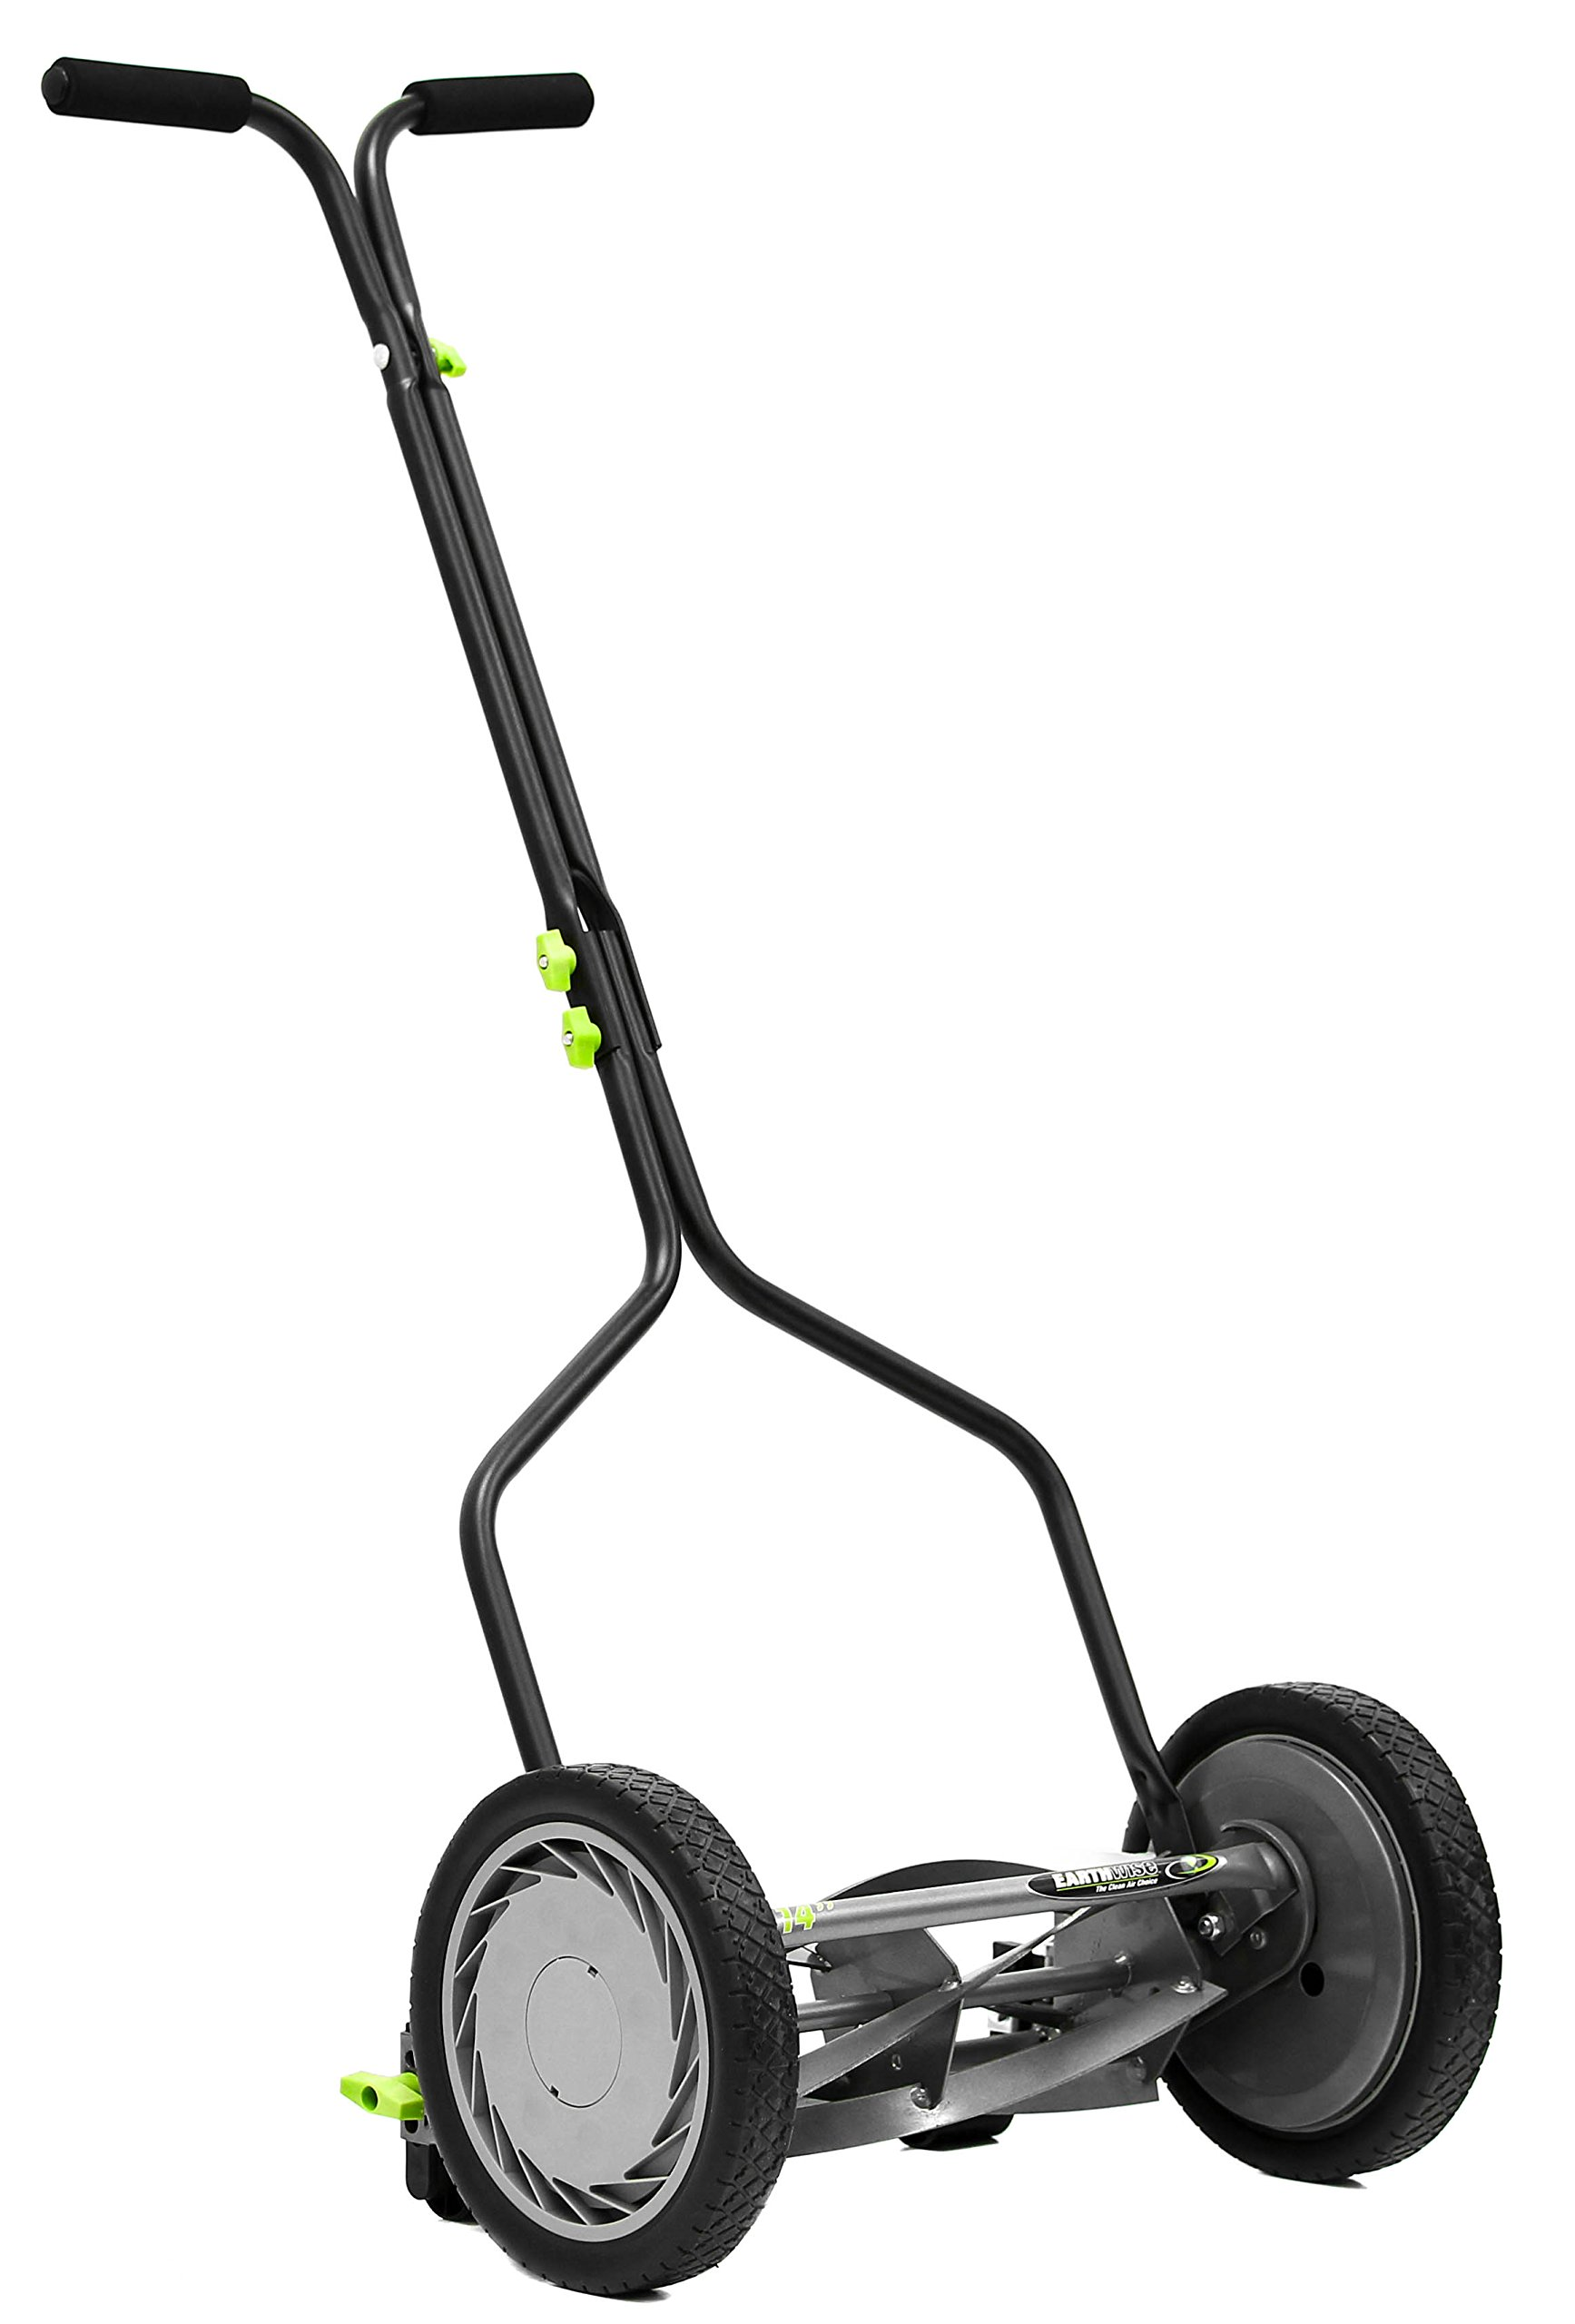 Earthwise 1314-14EW 14-Inch 5-Blade Push Reel Lawn Mower, Grey by Earthwise